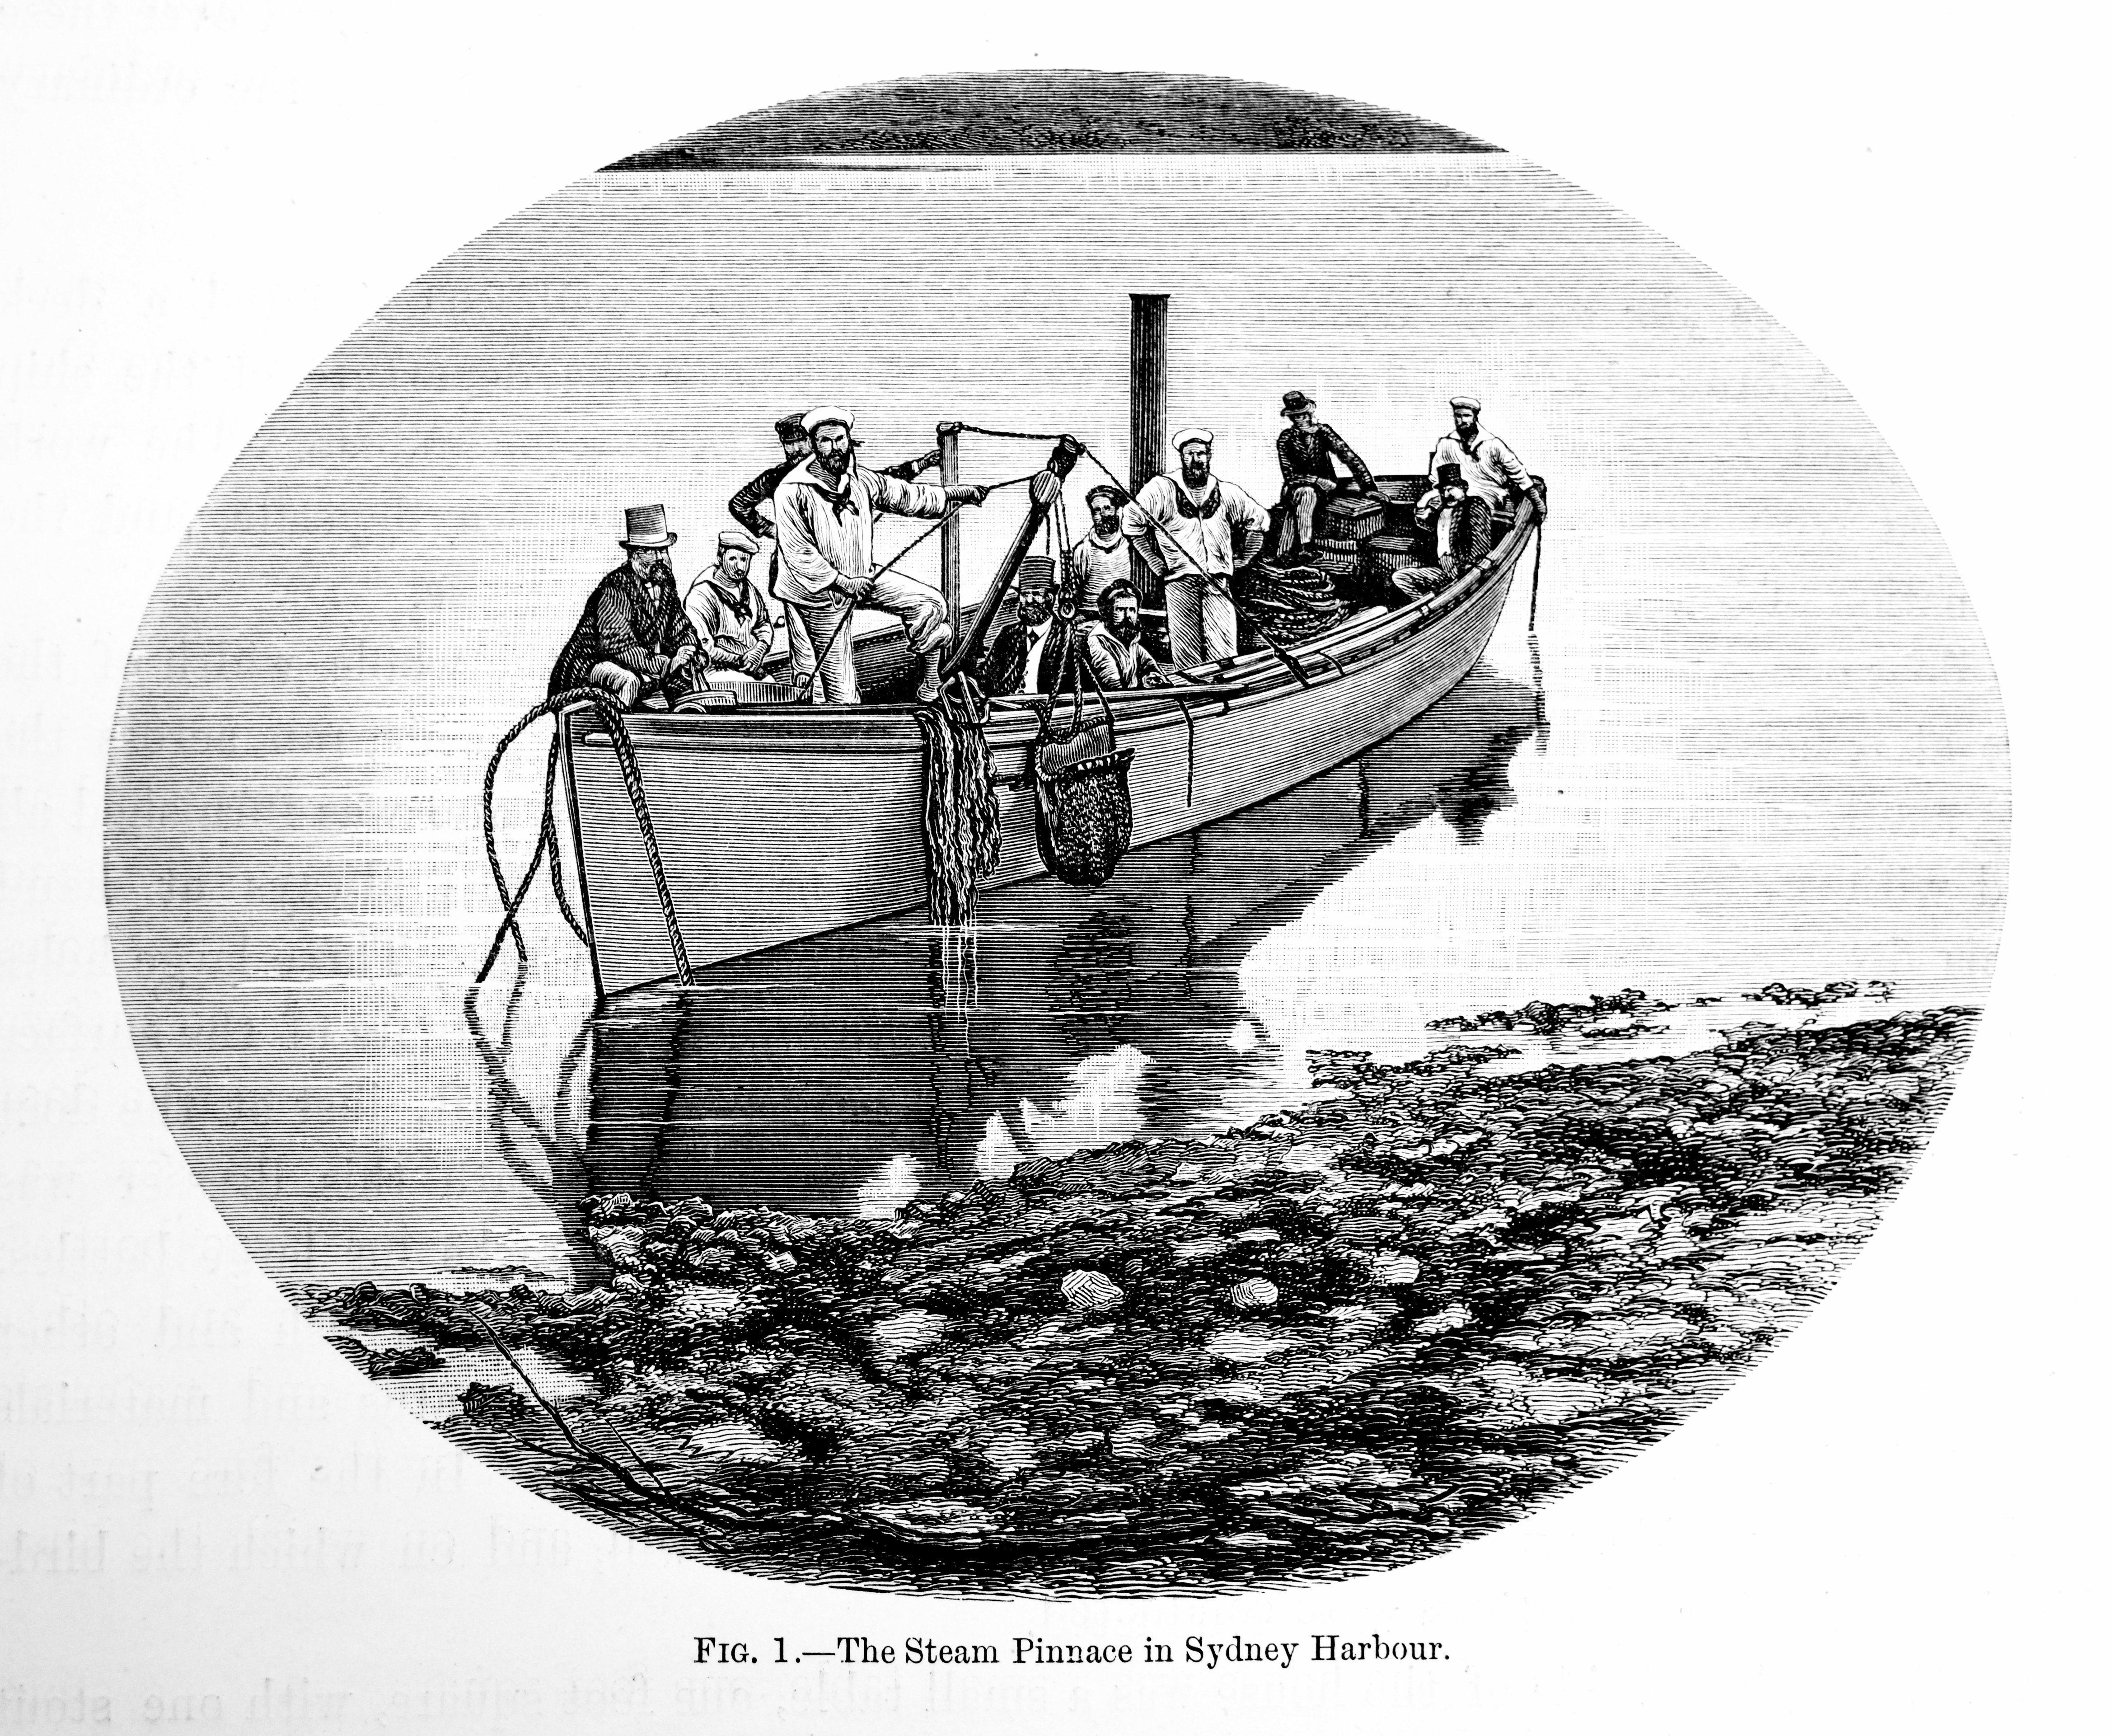 The dredge could also be dragged behind the Challenger's steam pinnace.